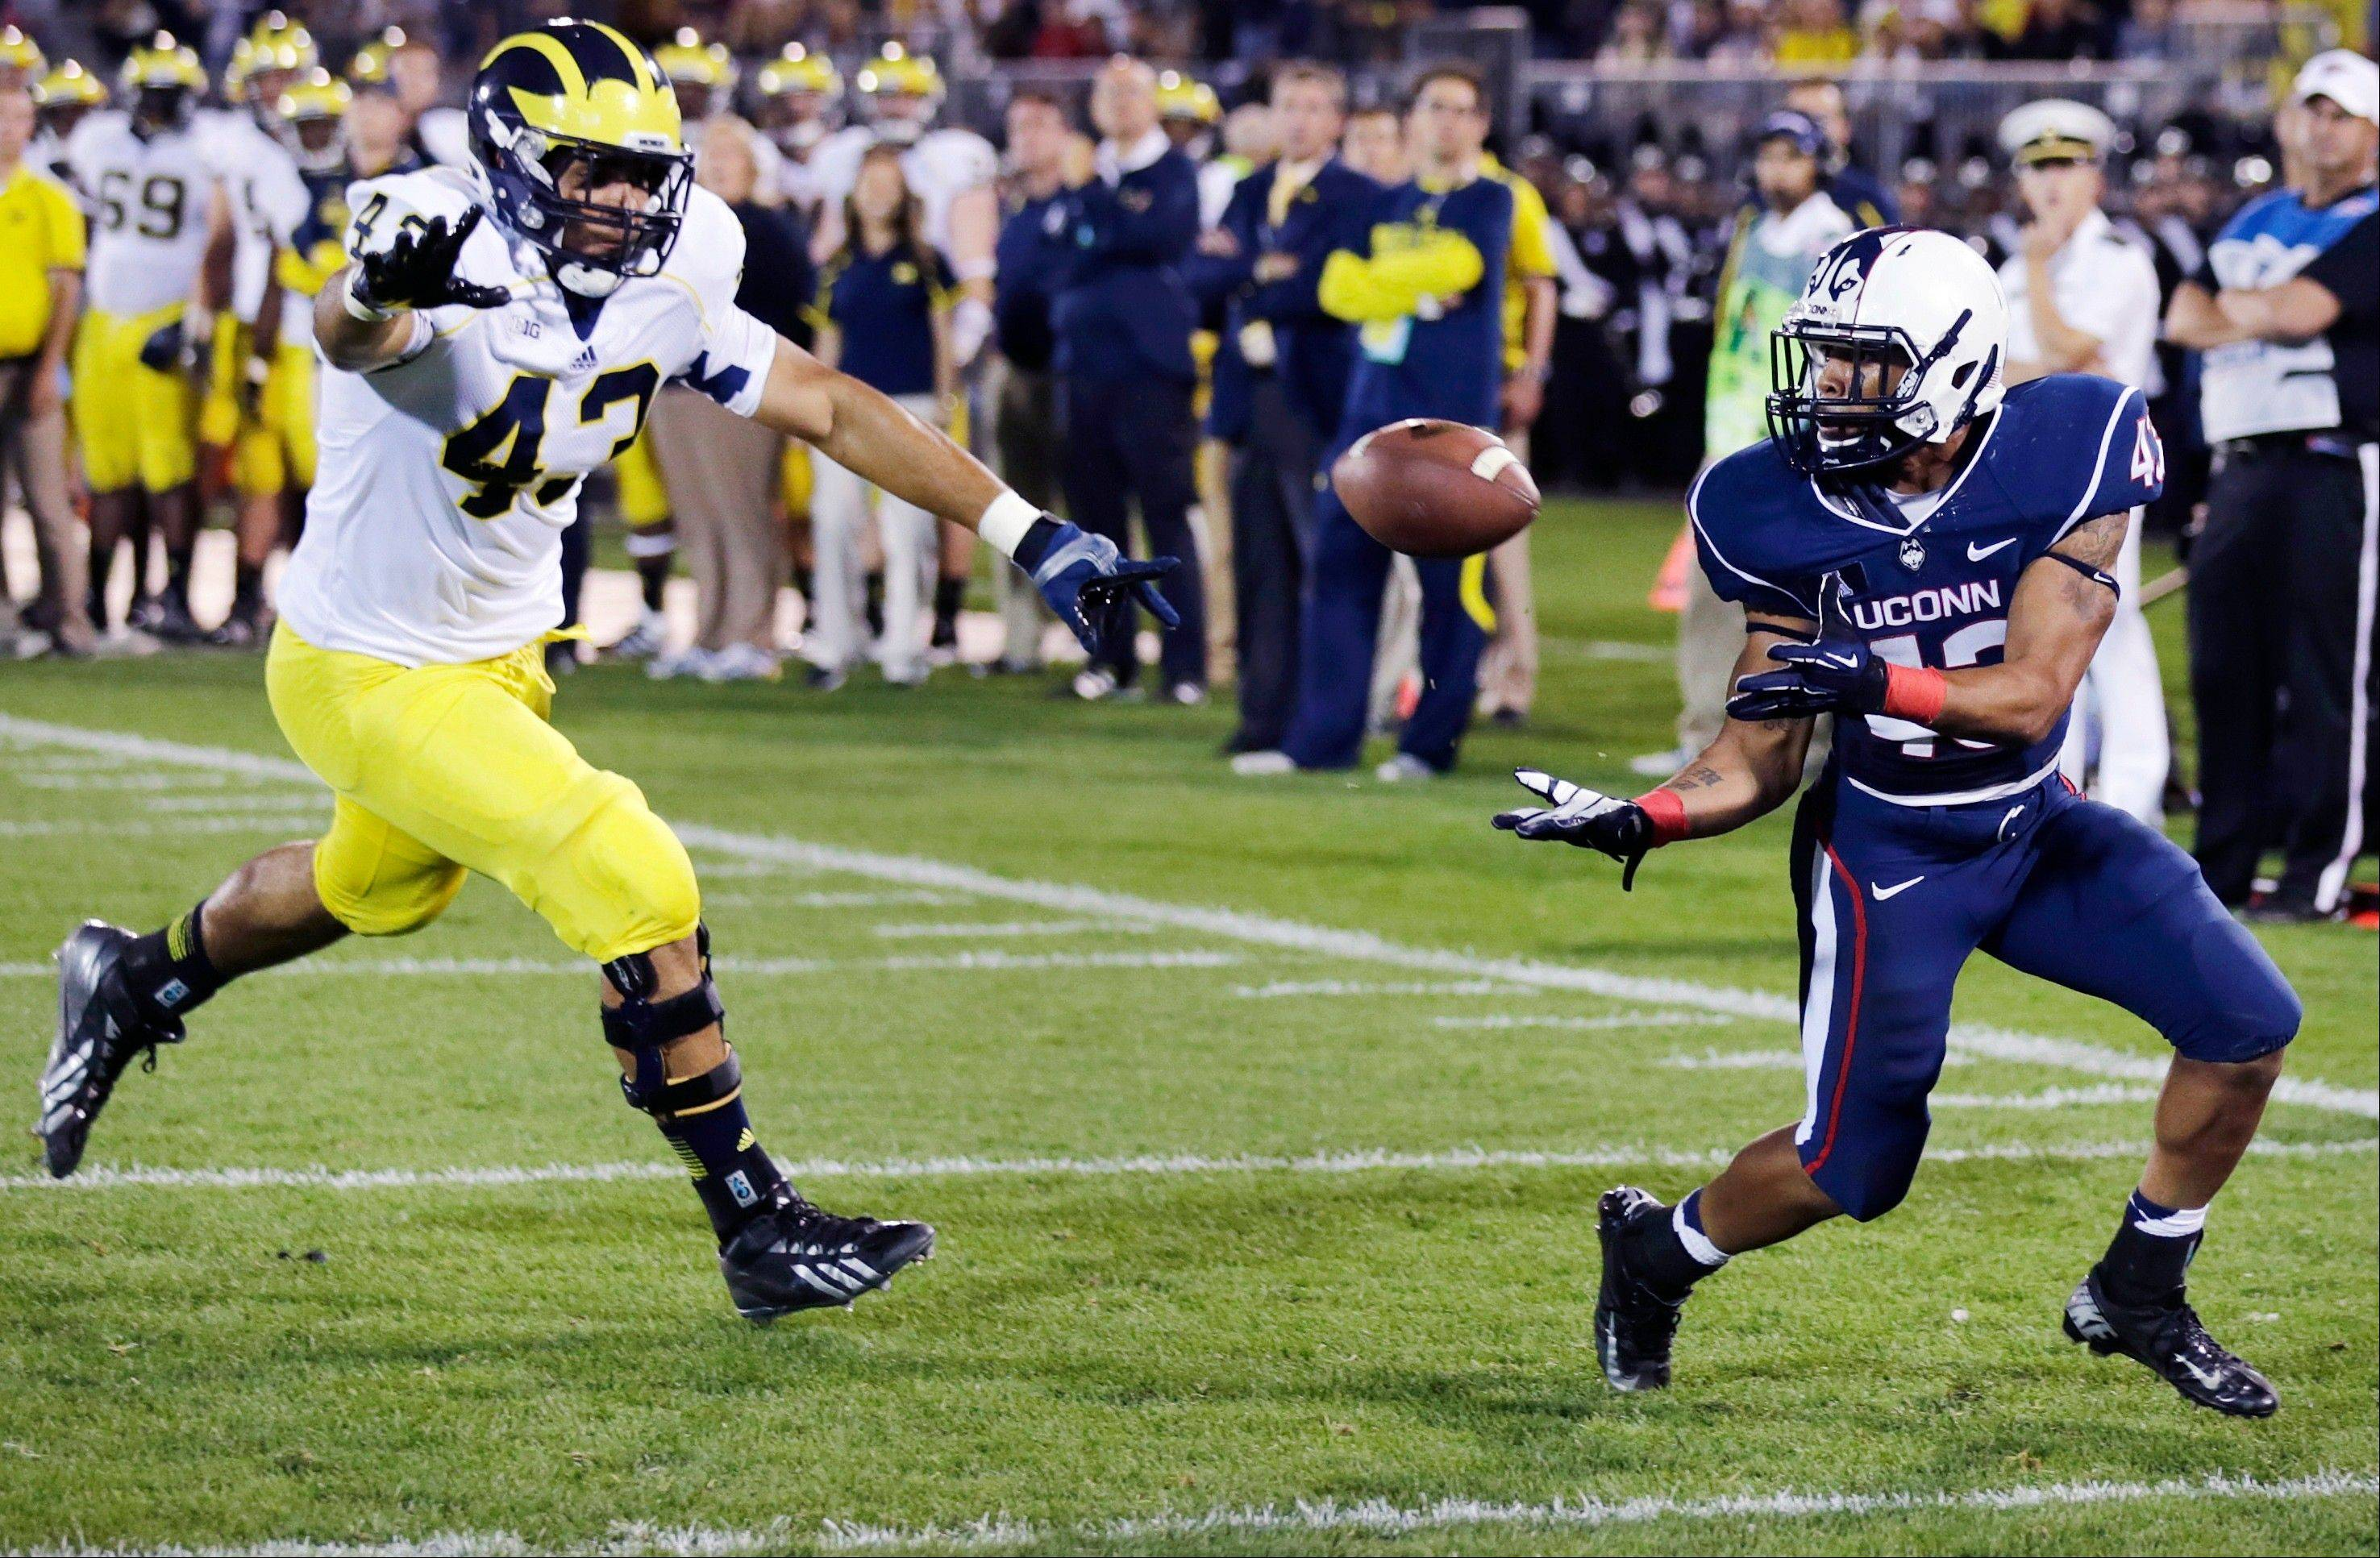 Connecticut running back Lyle McCombs, right, hauls in a touchdown pass against Michigan defensive lineman Chris Wormley during the second quarter of last Saturday's game in East Hartford, Conn. The Wolverines came back from a 14-point, second-half deficit to win 24-21.